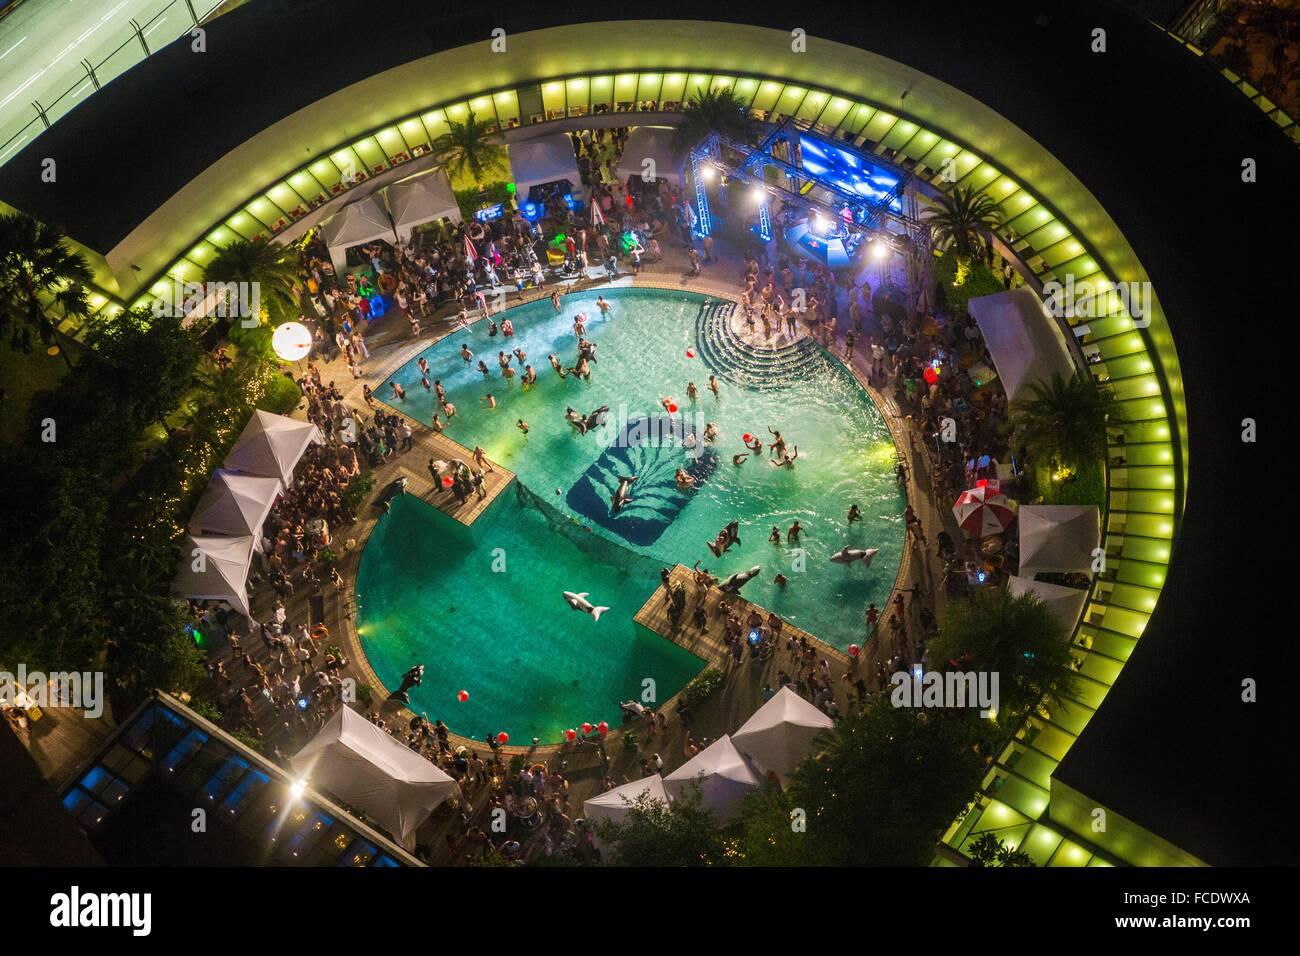 Party at swimming pool pan pacific hotel singapore - Pan pacific orchard swimming pool ...